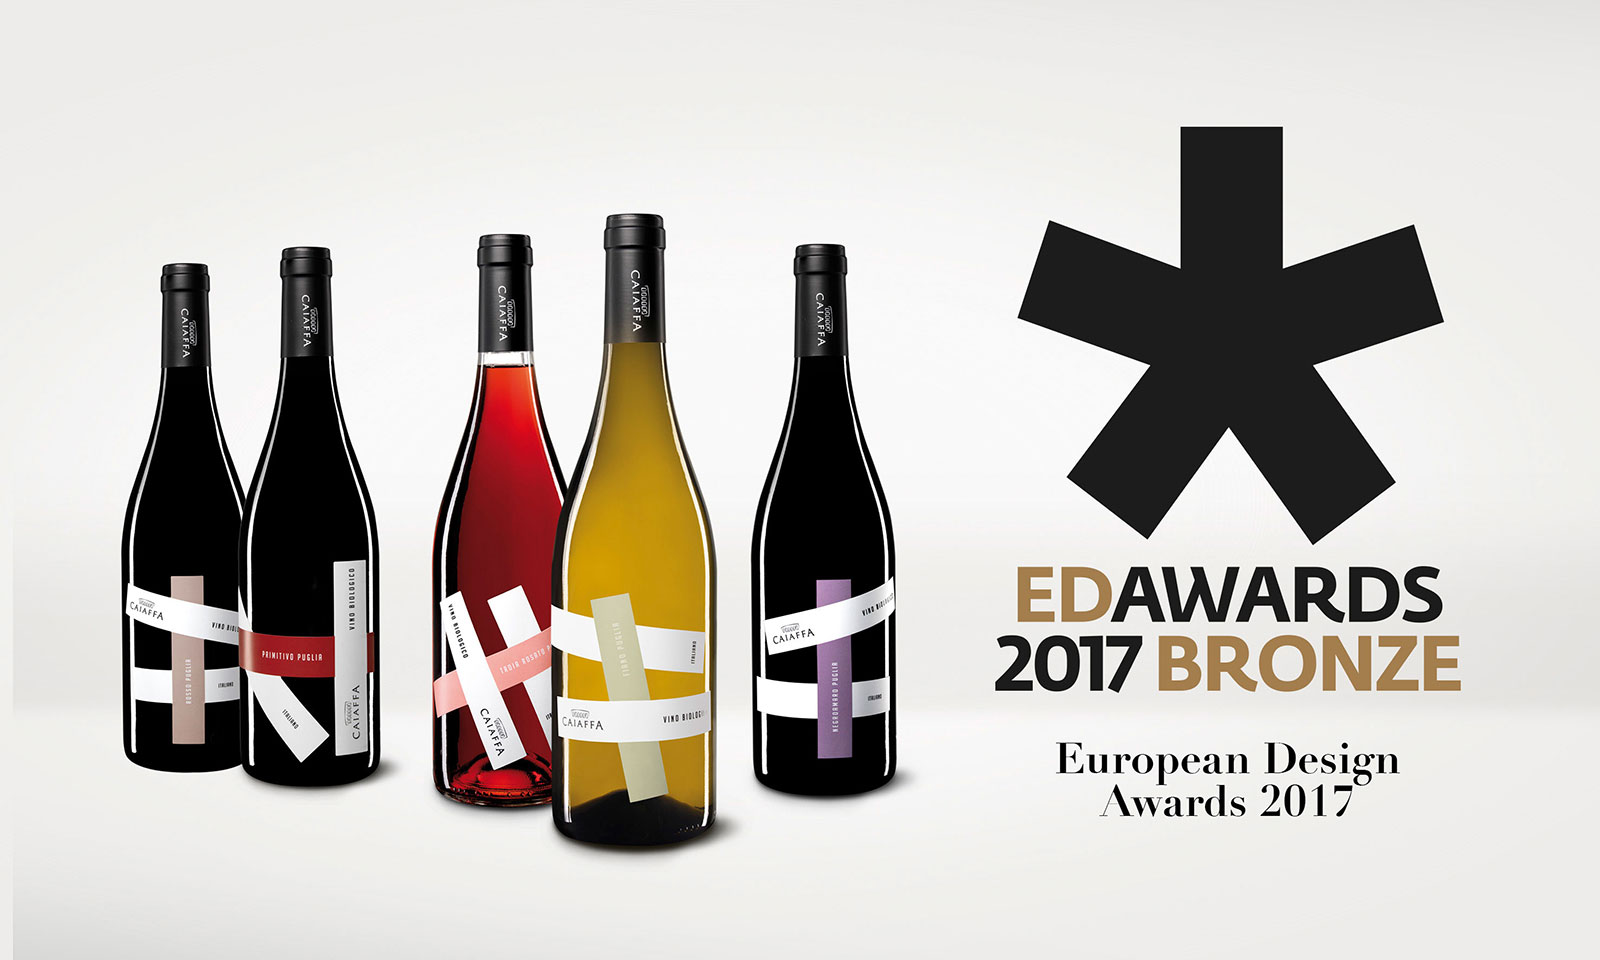 European Design 2017 Awards